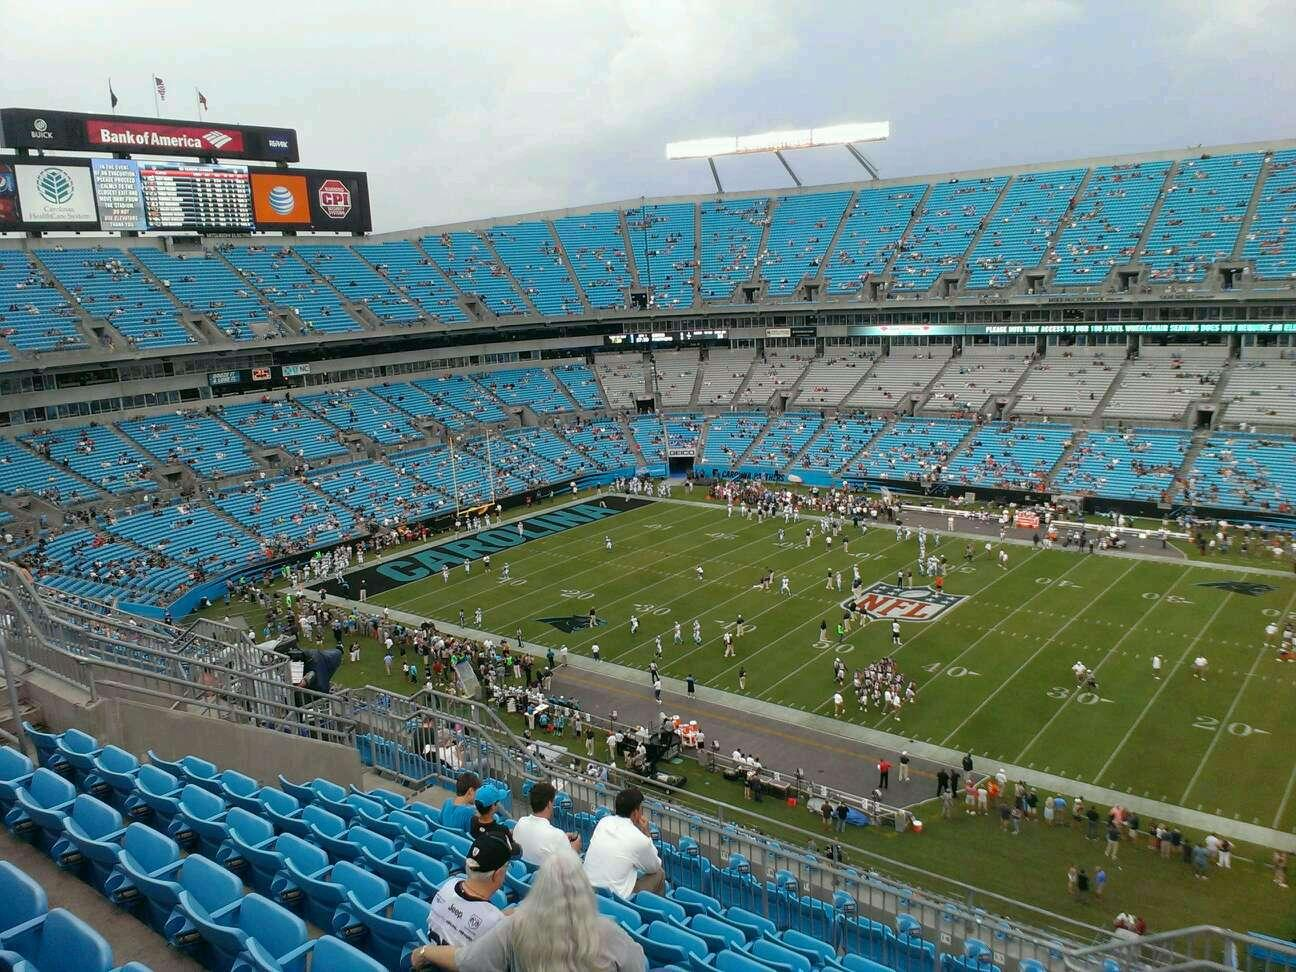 Seat View Bank Of America Stadium Transmission Shops In